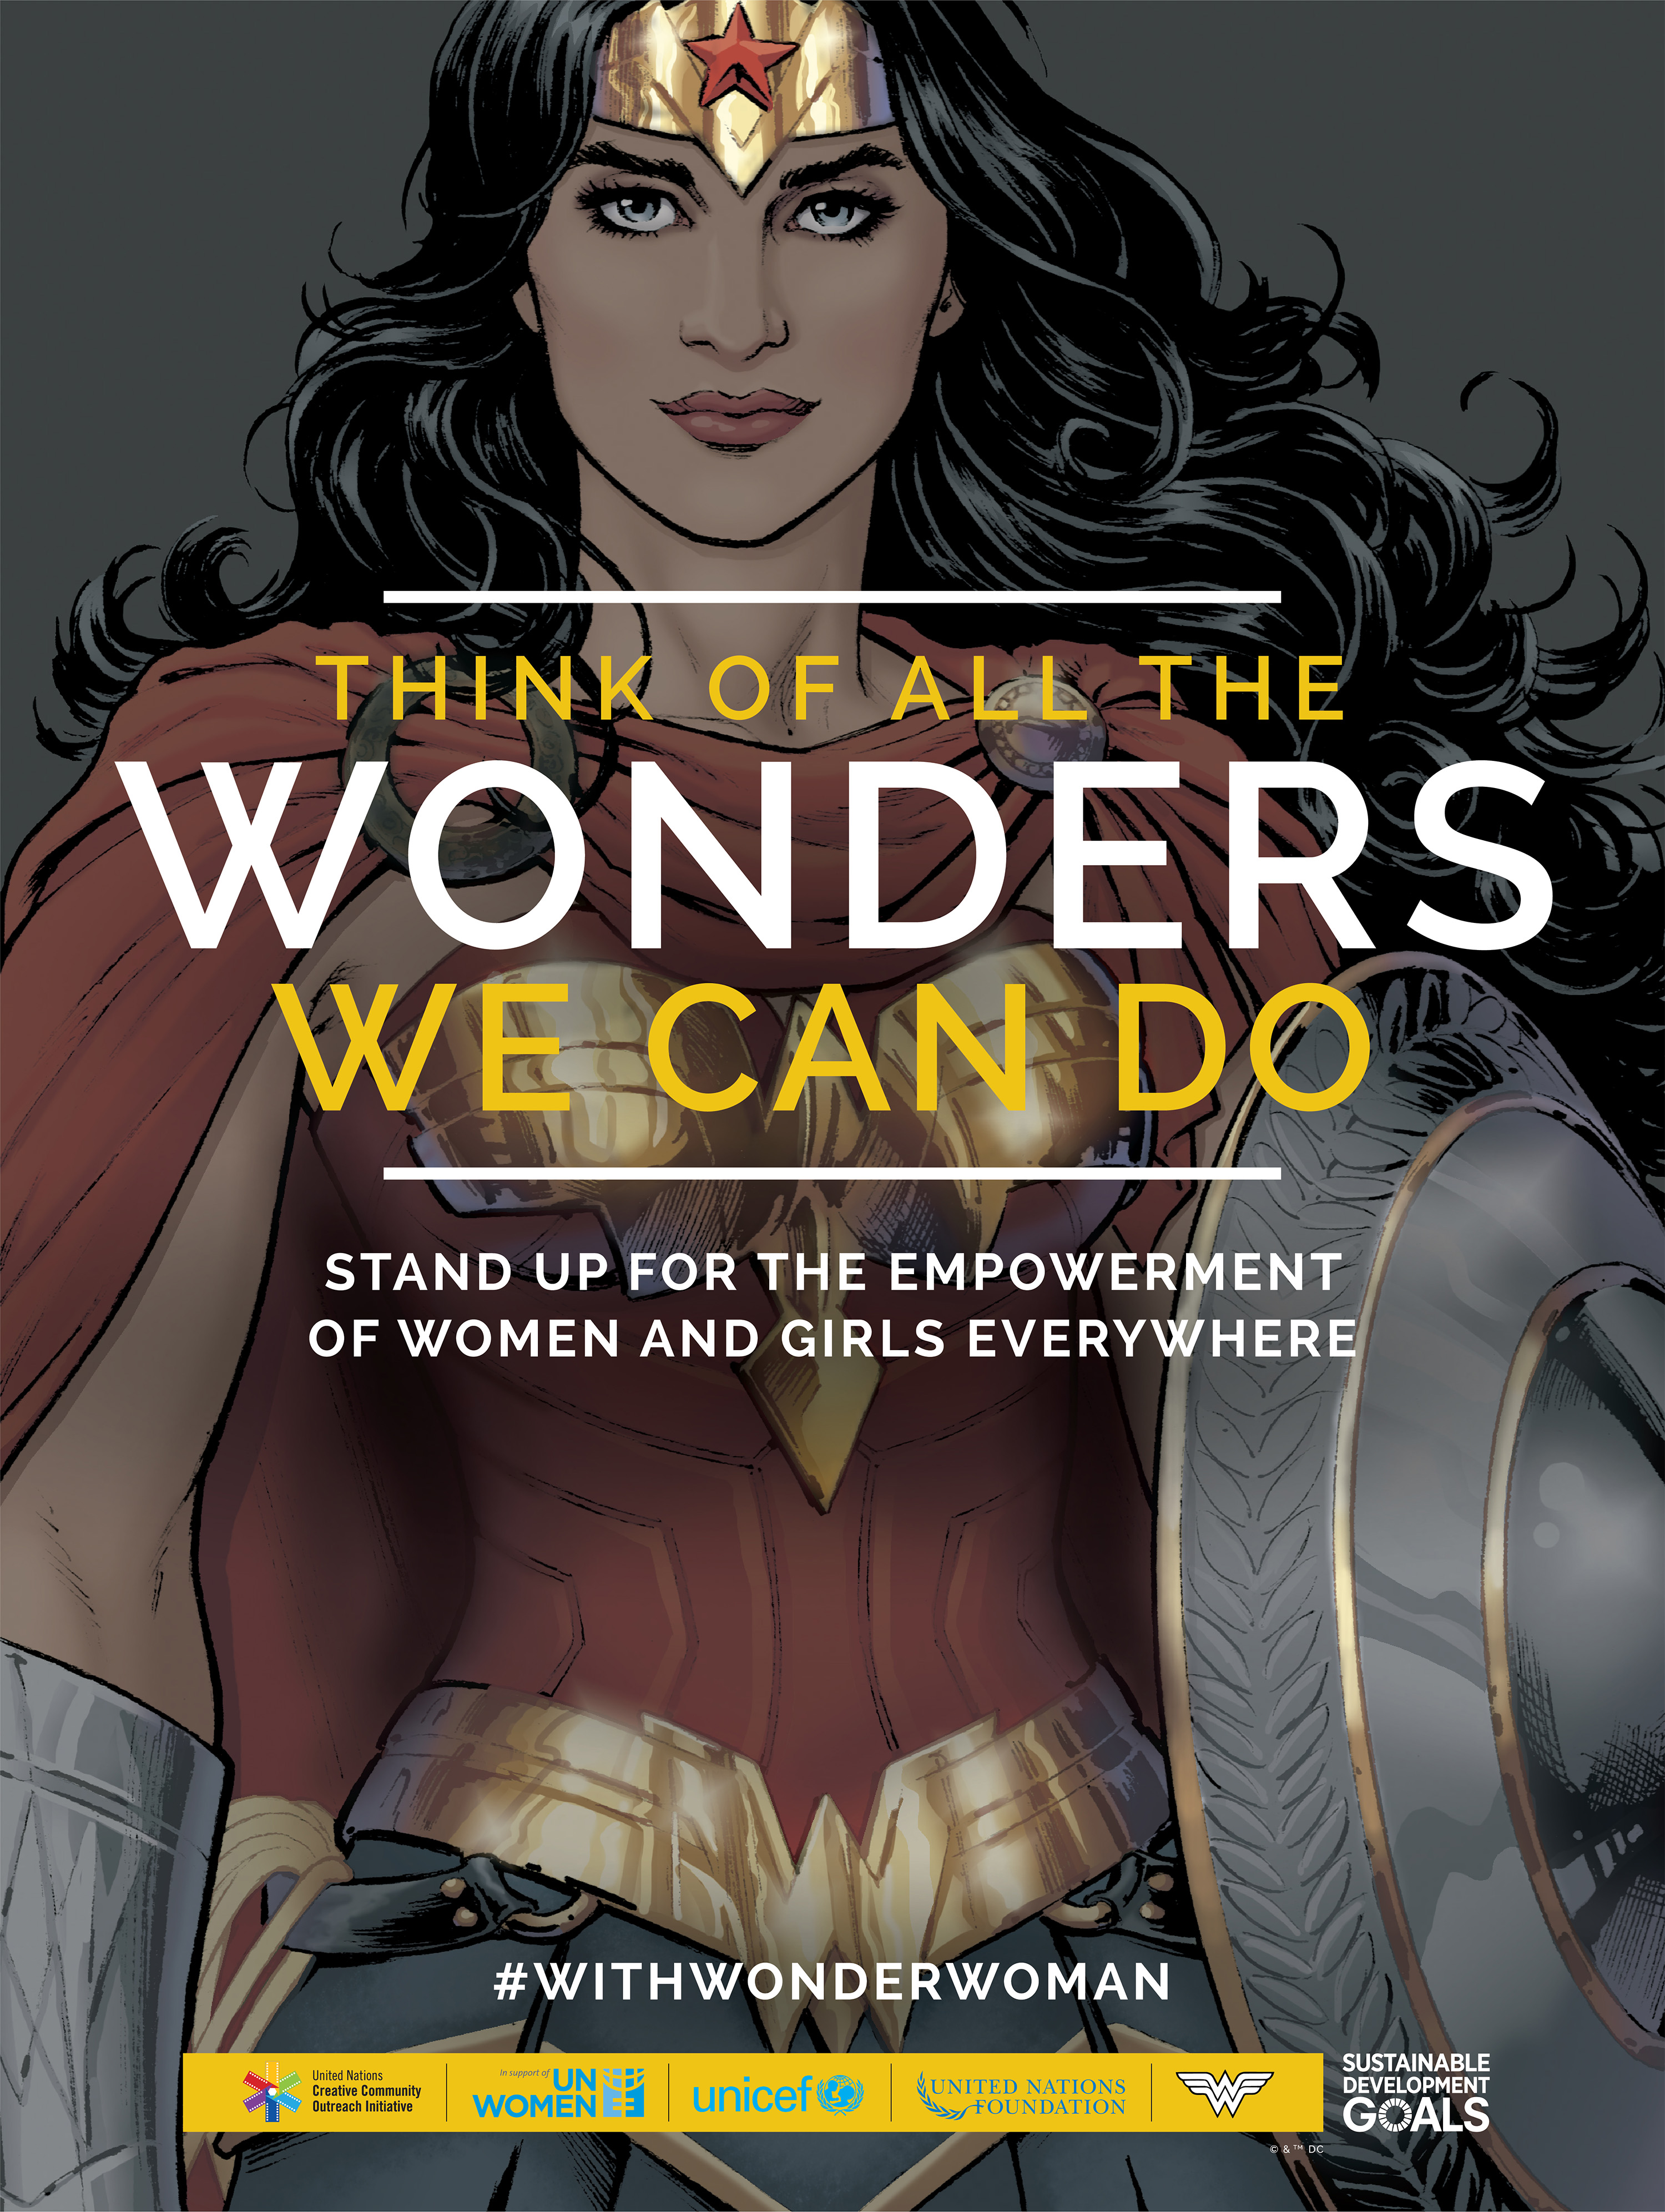 2018 GlobalTrend Awards - Wonder Woman UN Honorary Ambassador Campaign